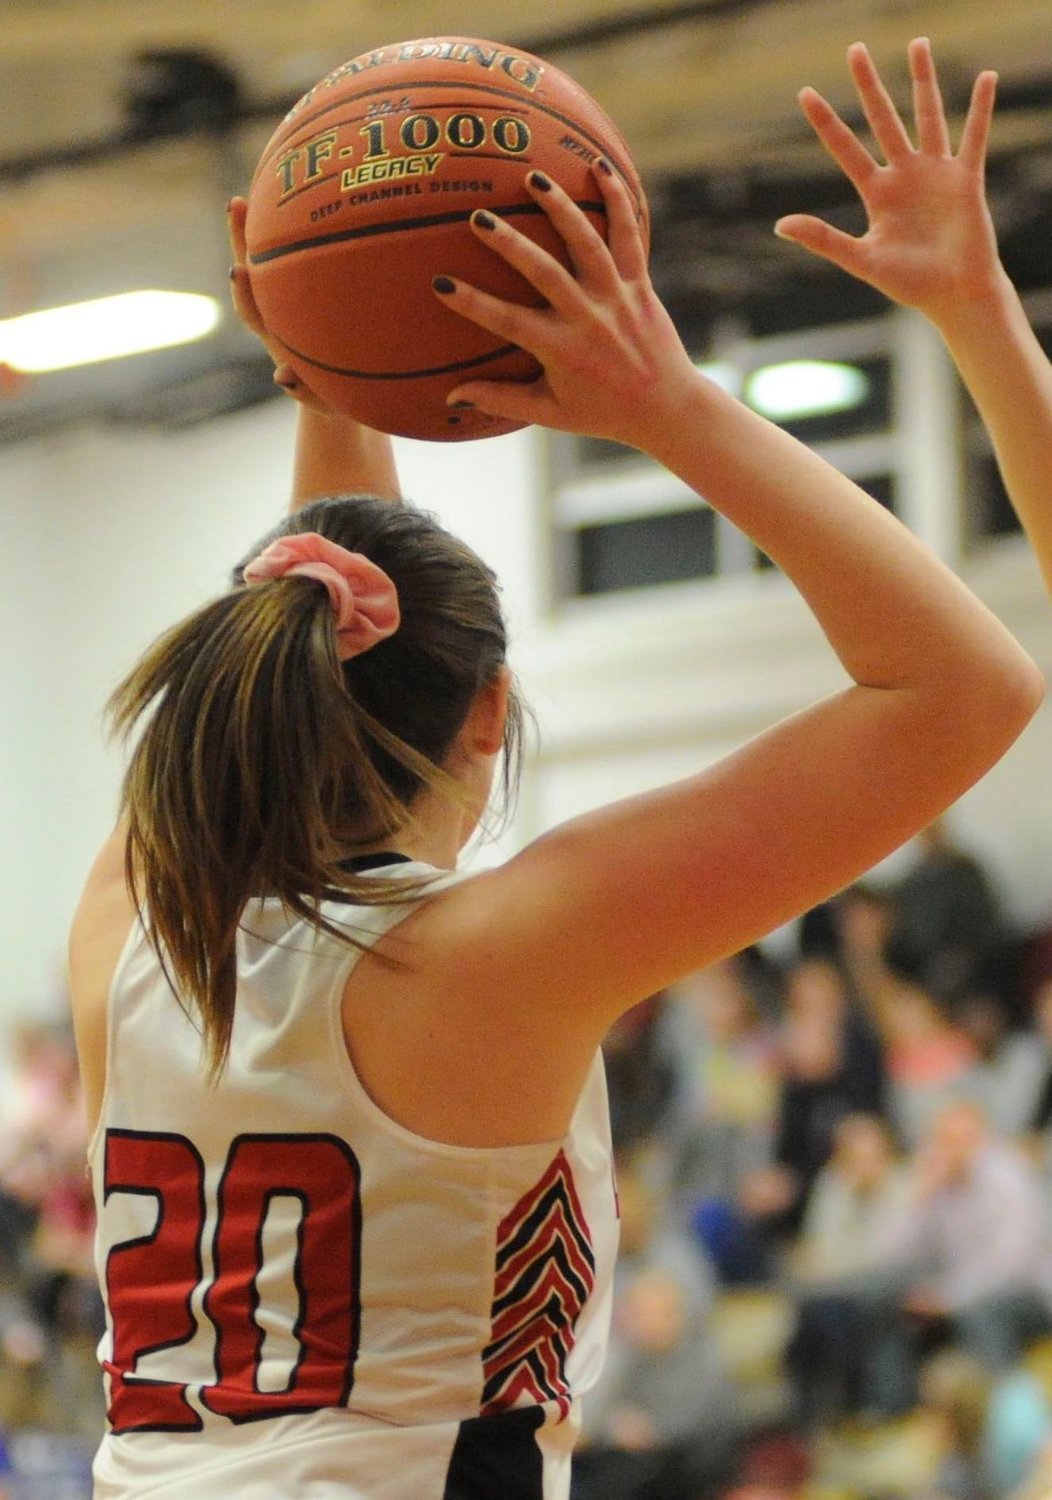 Lady Hornets senior co-captain Taylor Maxson scored 6 points in Honesdale's win over Wallenpaupack.